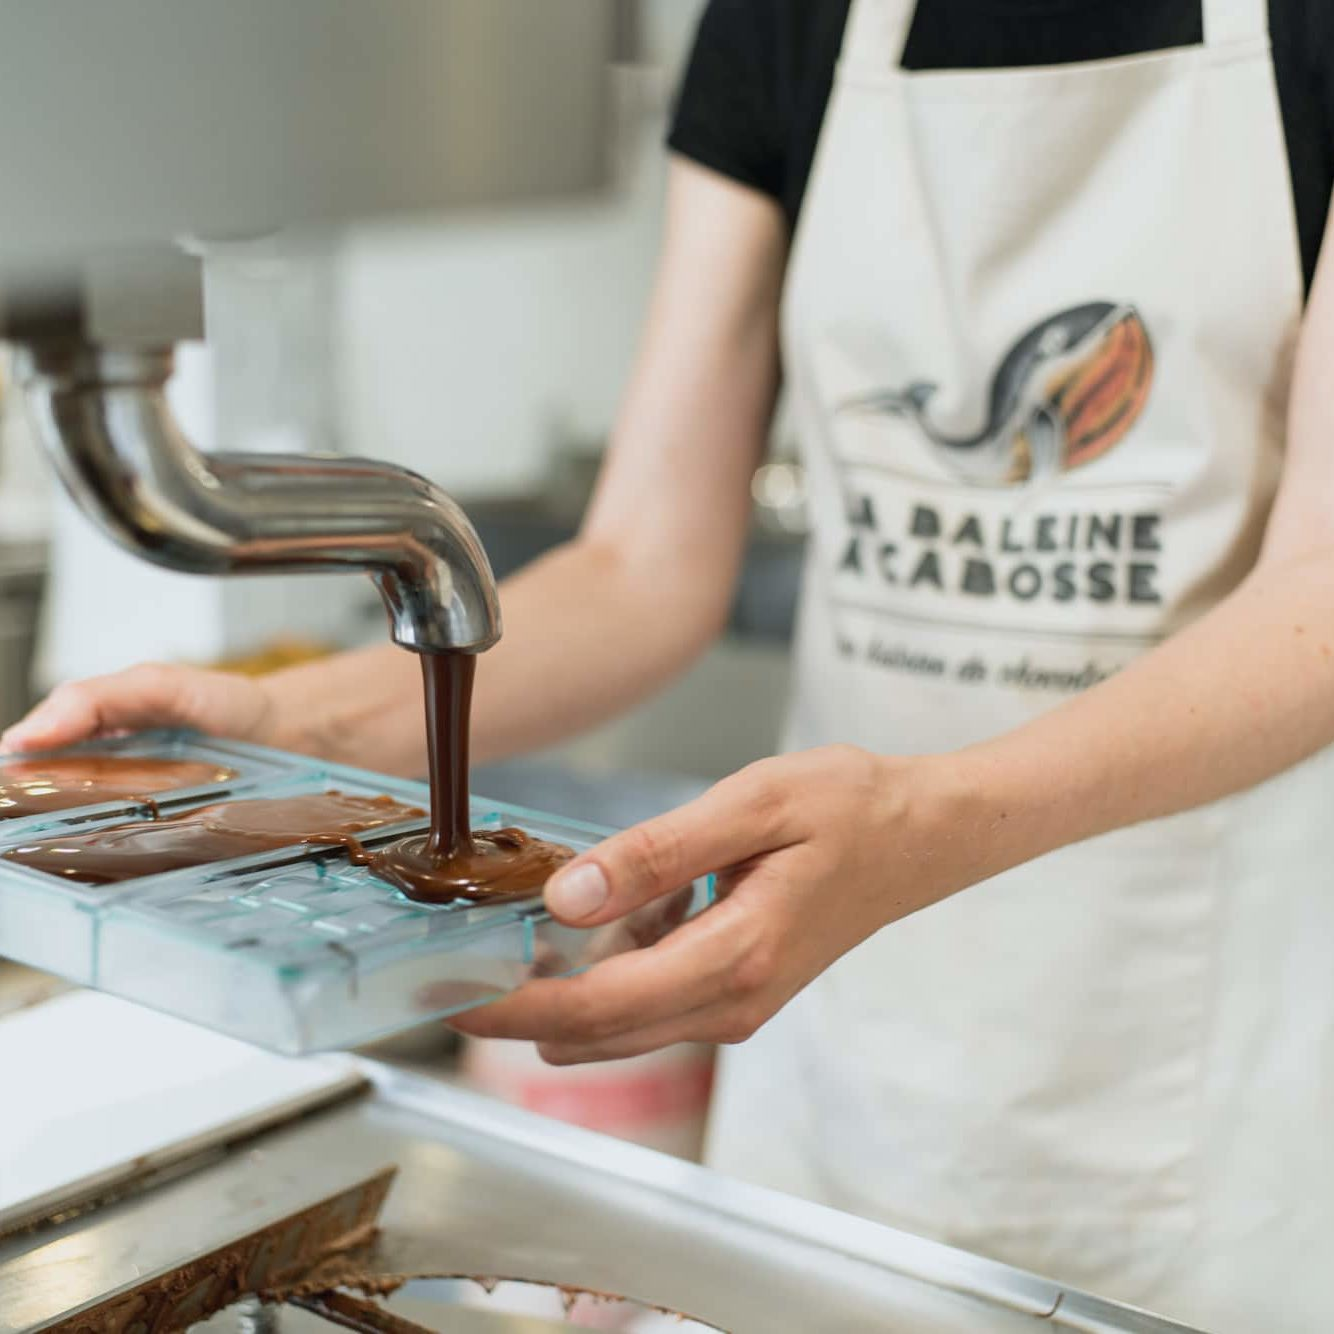 Photos culinaires - Photographies alimentaires - Marseille - Light On Studio